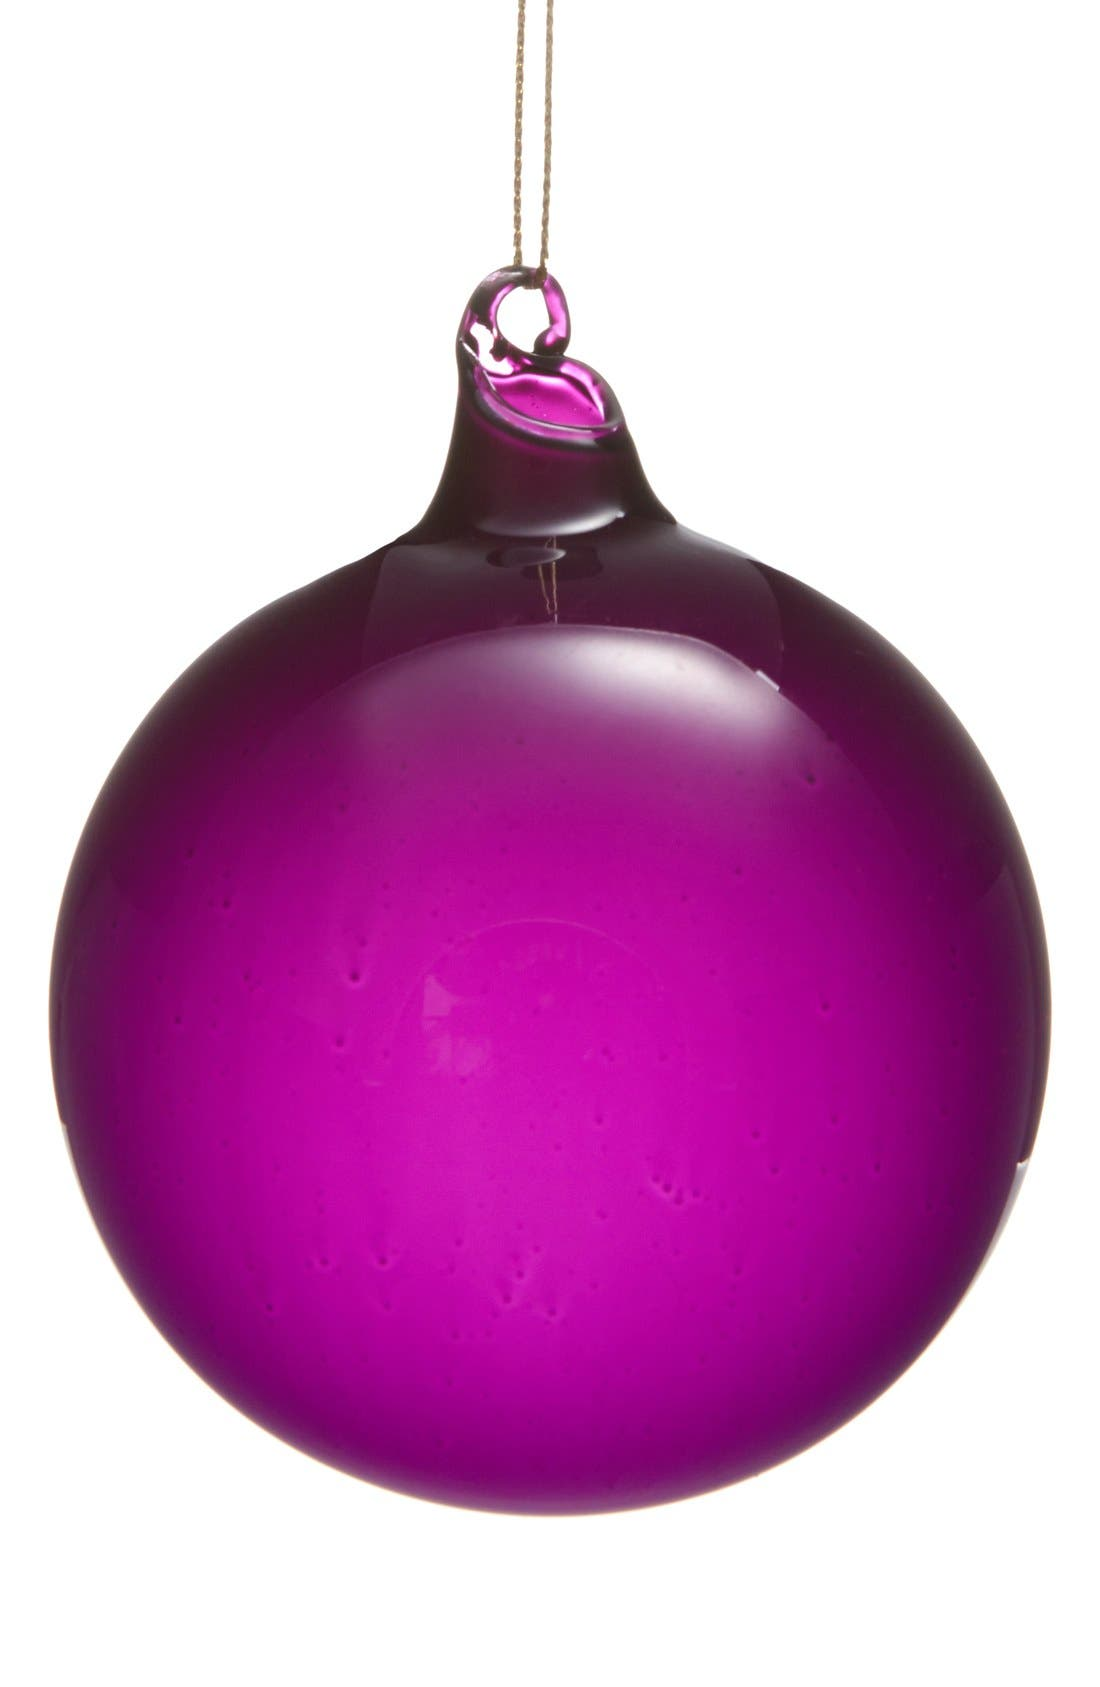 Main Image - Jim Marvin 'Bubblegum Ball' Ornaments (Set of 6)